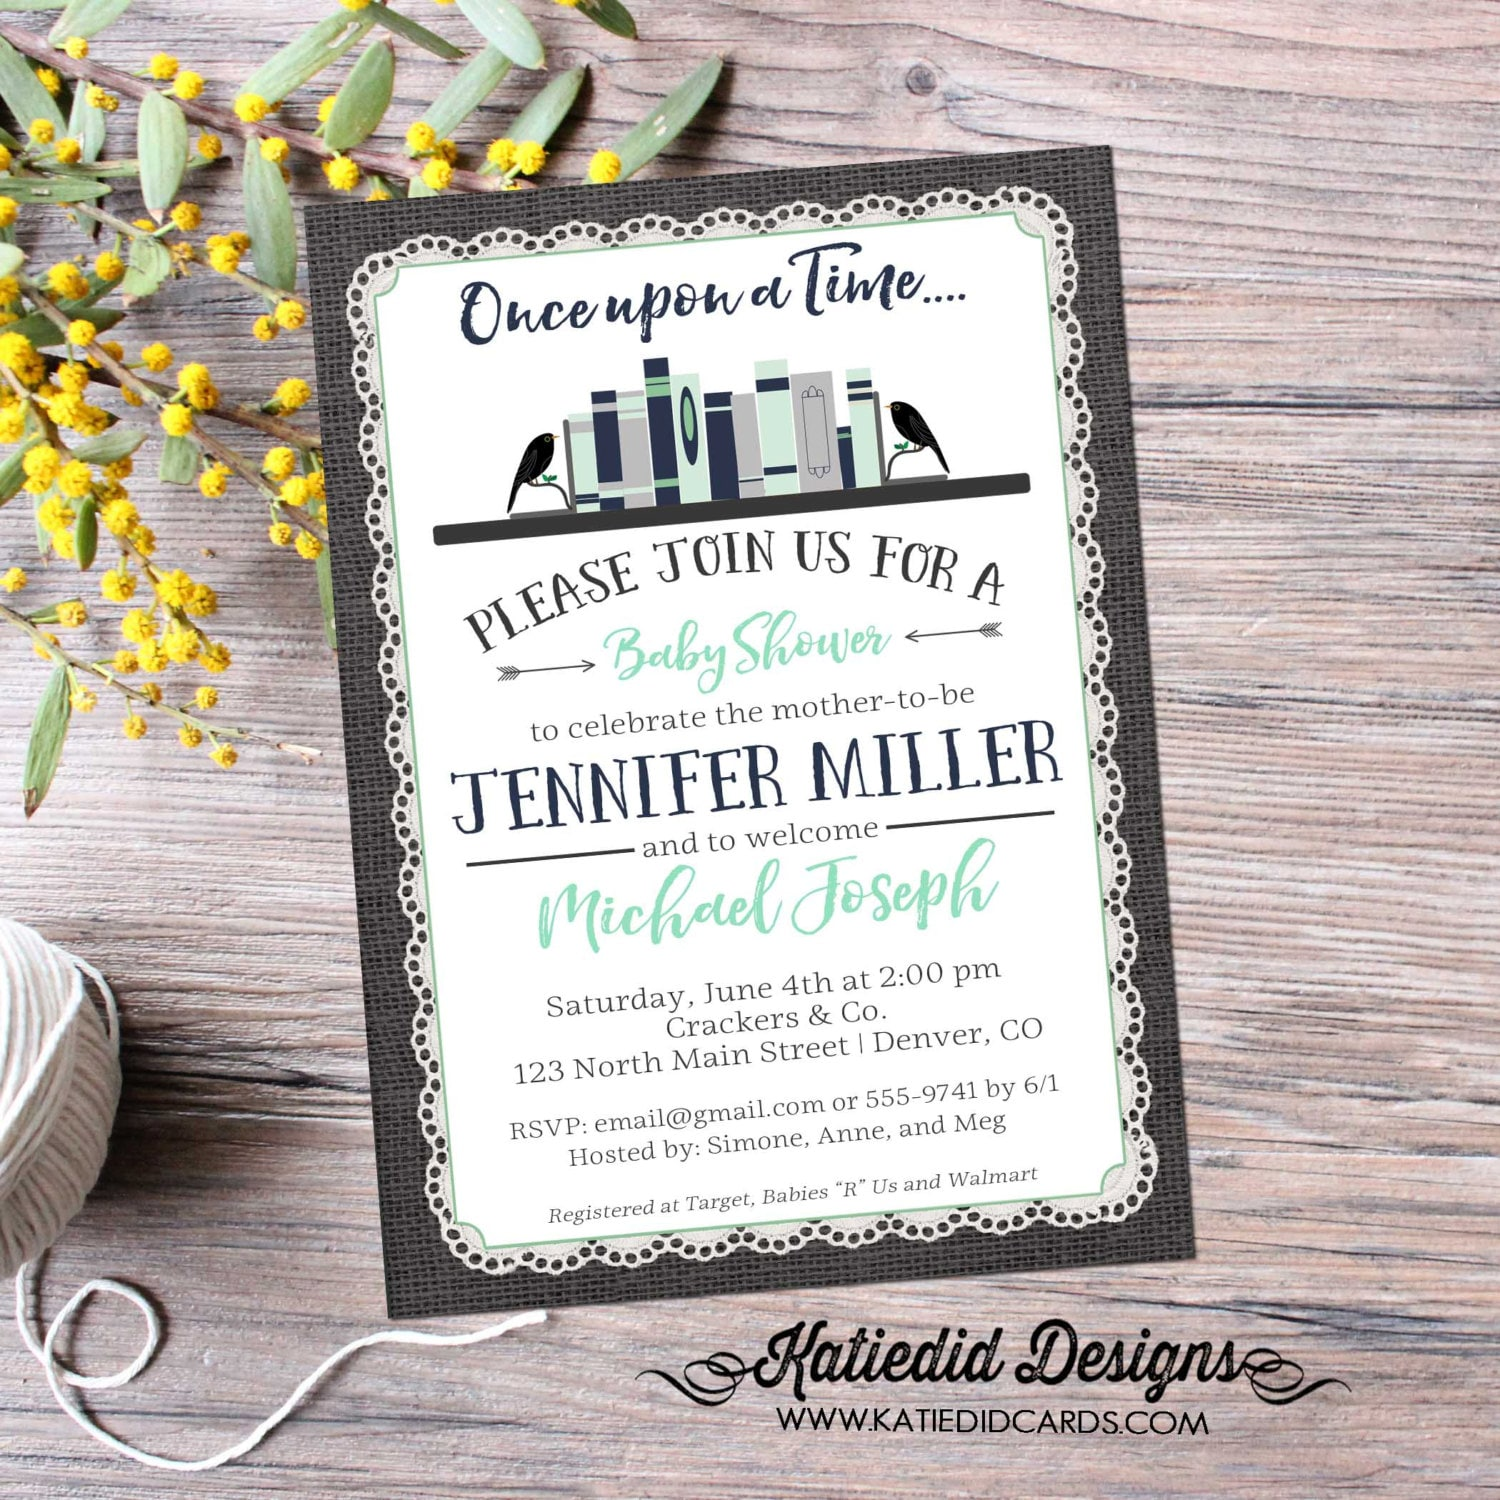 Storybook once upon a time baby shower invitation boy book theme storybook once upon a time baby shower invitation boy book theme diaper wipes brunch couples coed burlap lace navy mint 12122 katiedid filmwisefo